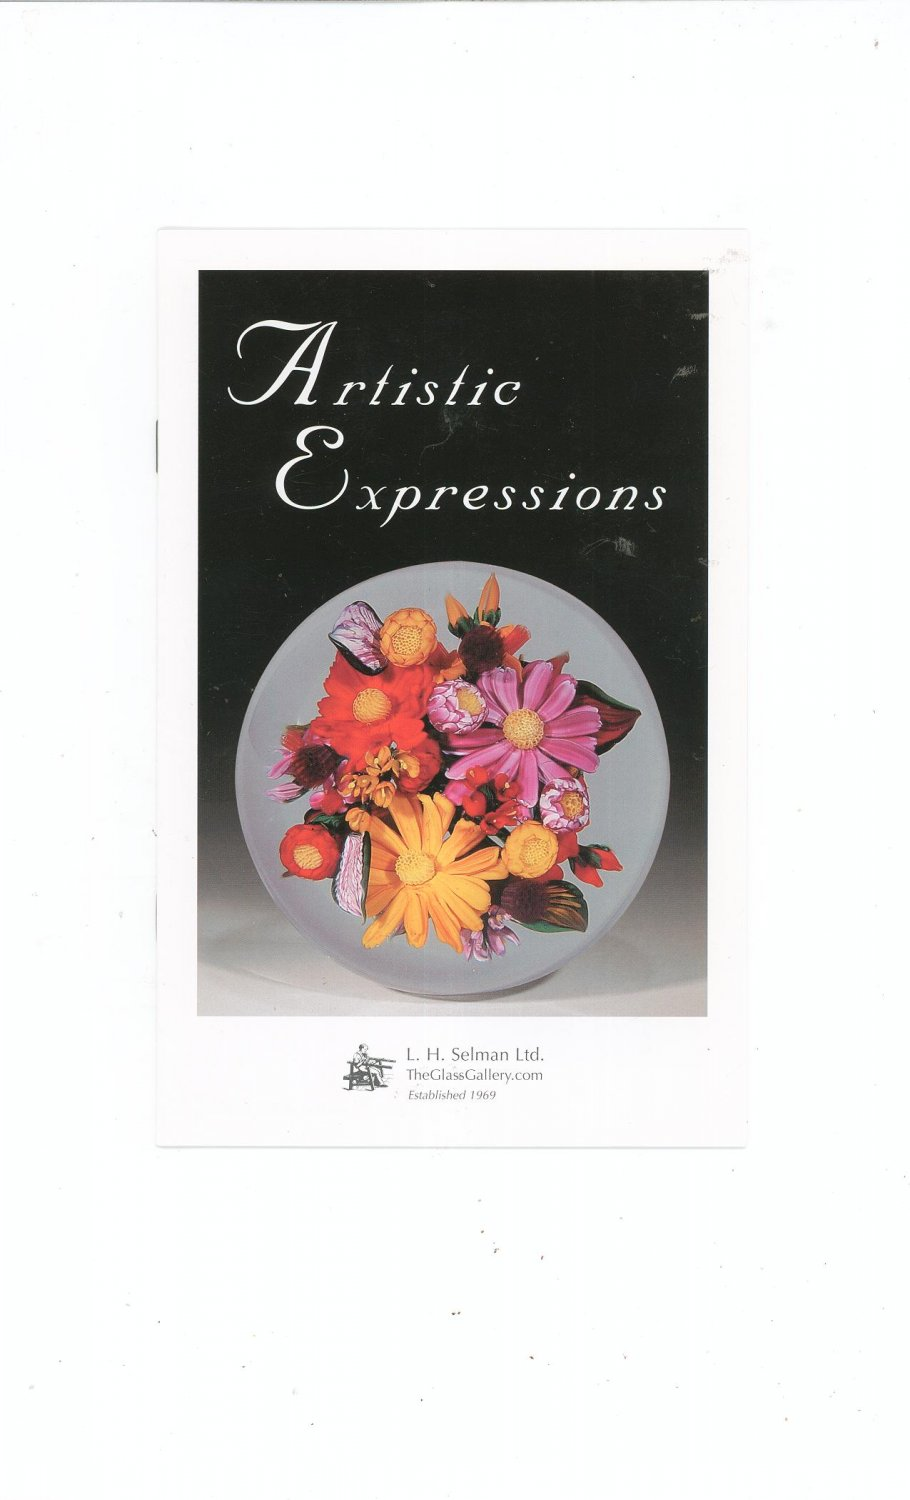 Artistic Expressions Catalog / Brochure by L. H. Selman Ltd. Paperweights